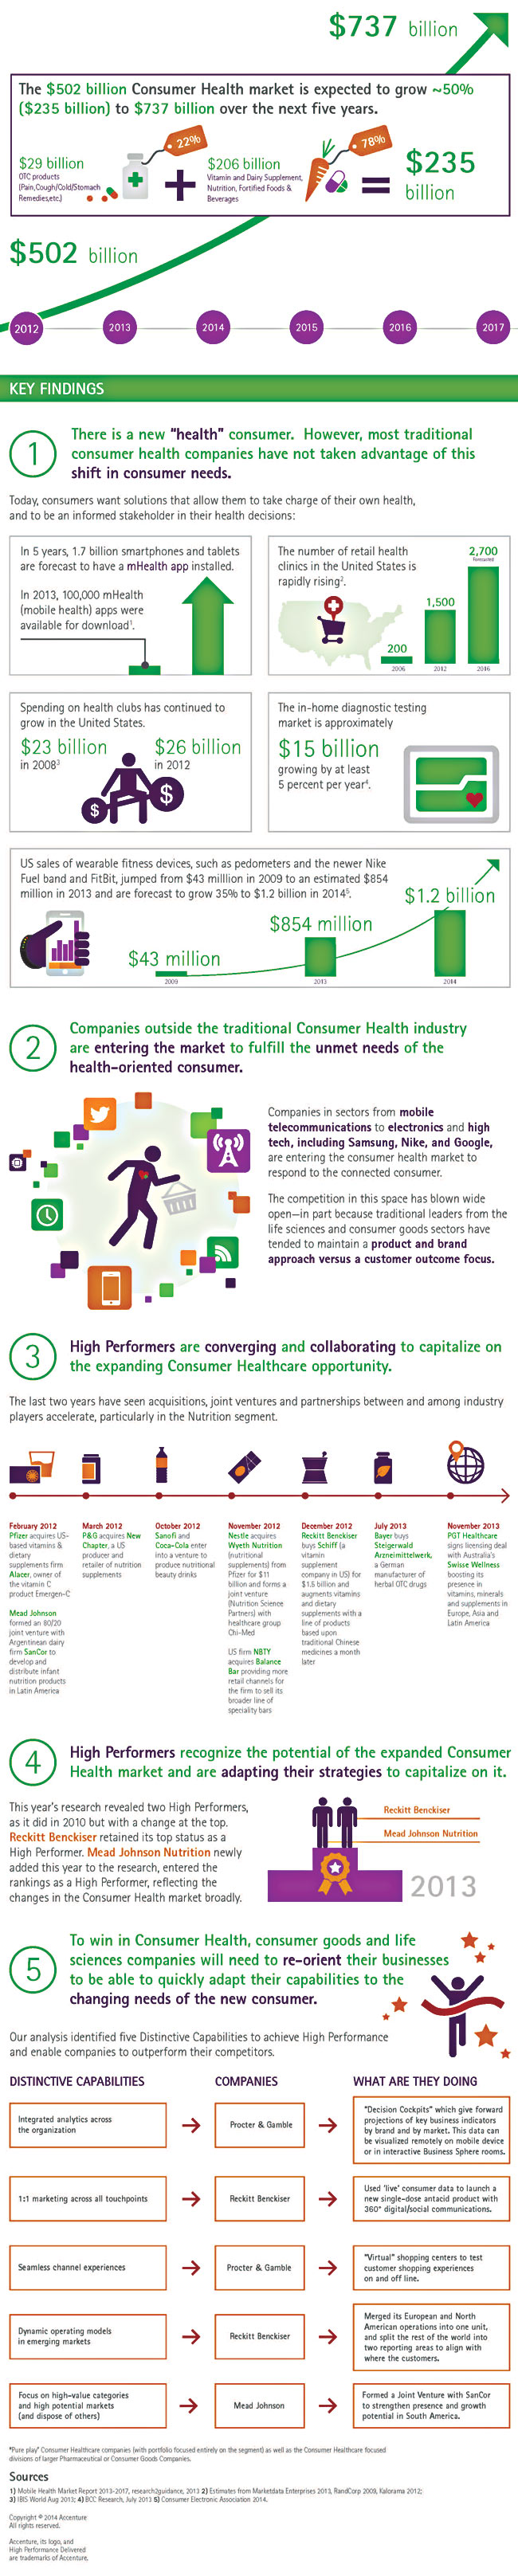 Accenture-Changing-Future-of-Consumer-Health-High-Performance-Business-Study-2013-Update-Infographic